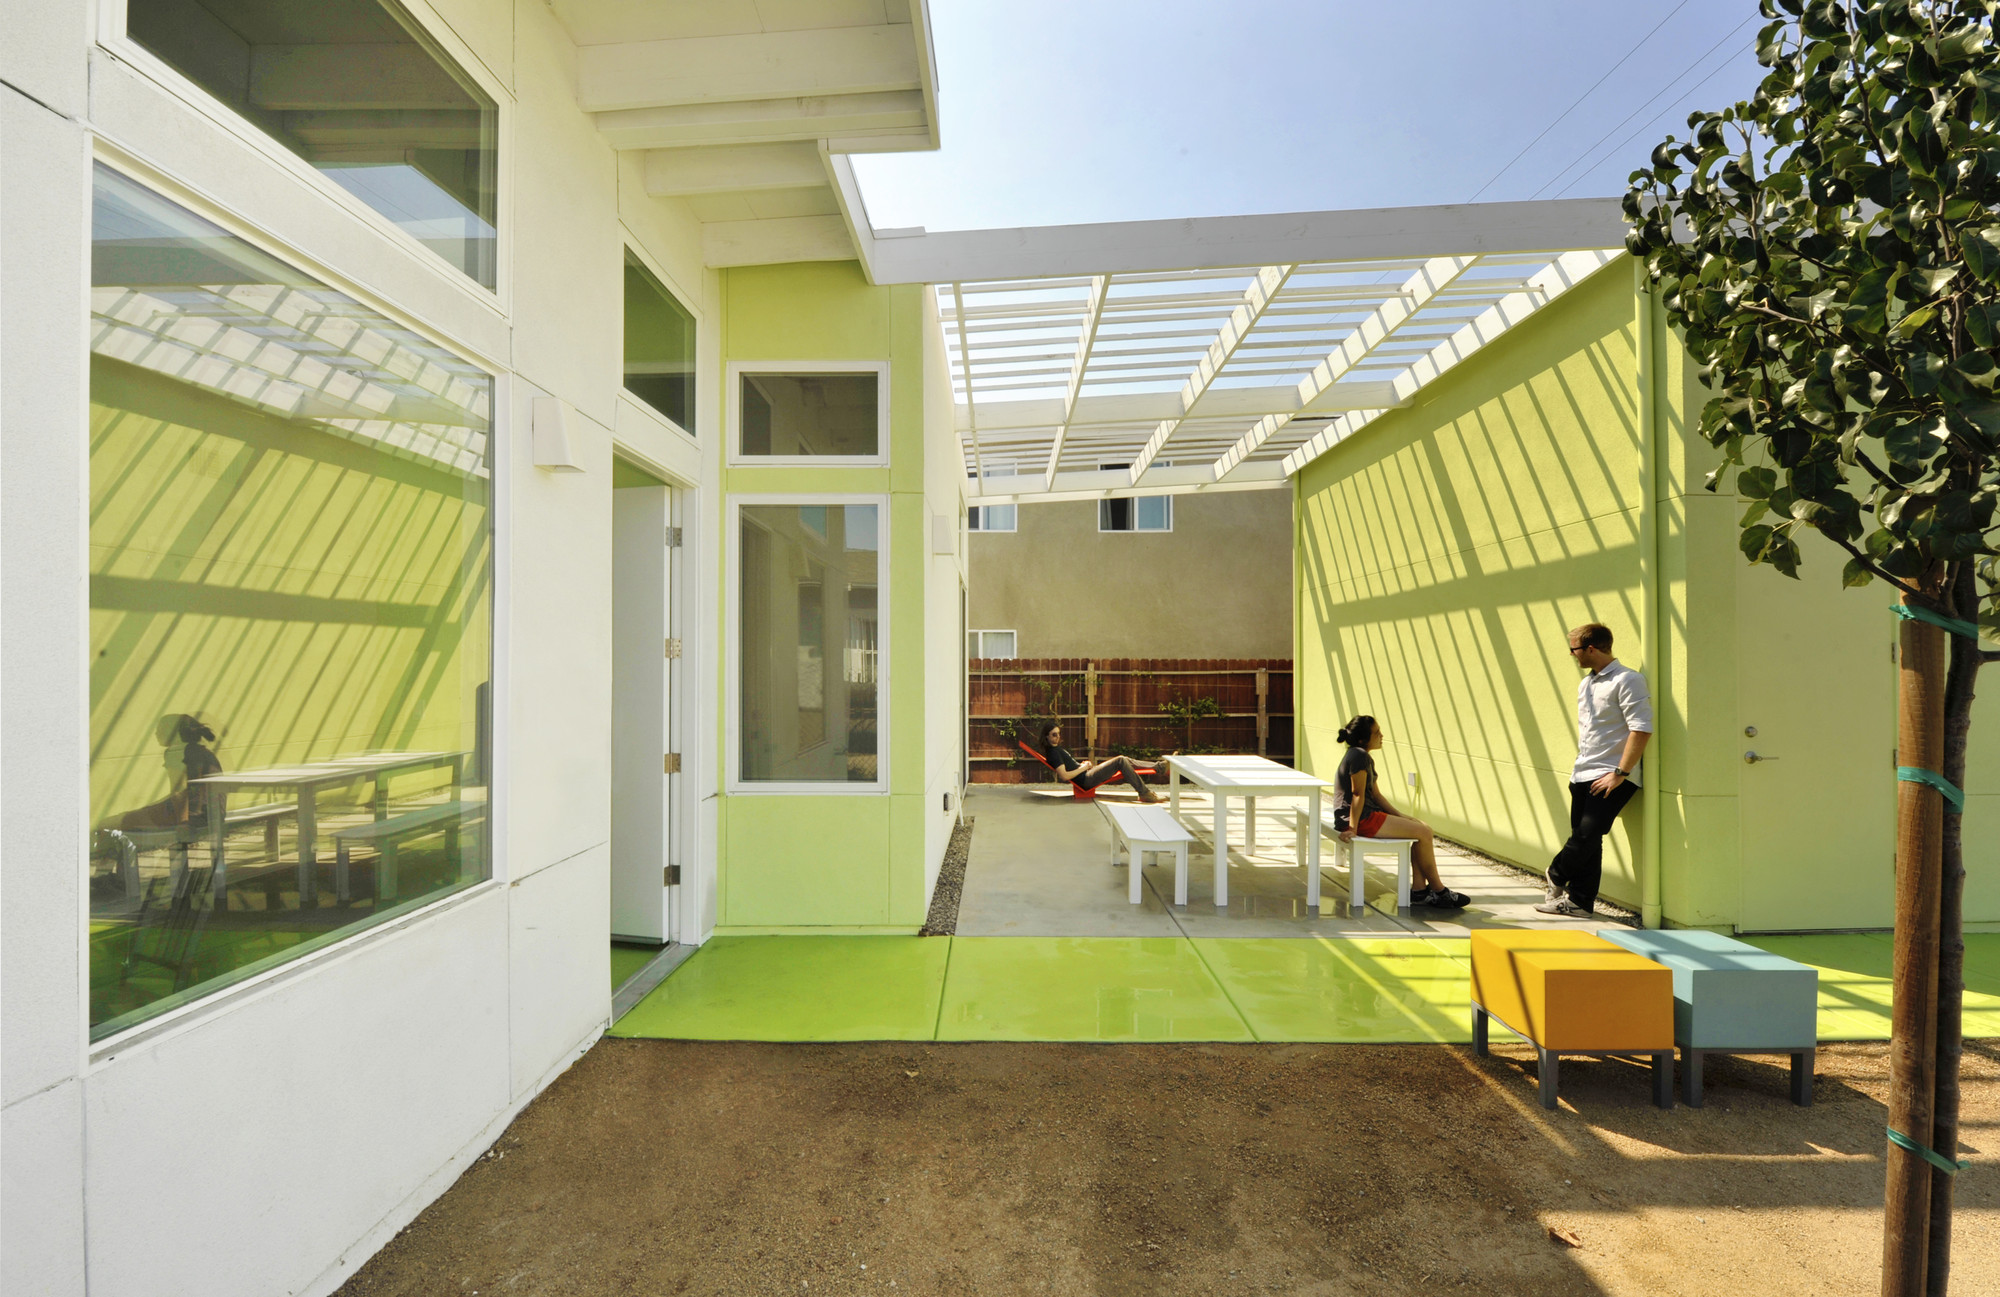 Restore Neighborhoods Los Angeles Affordable Housing Prototypes. Image Courtesy of Lehrer Architects LA